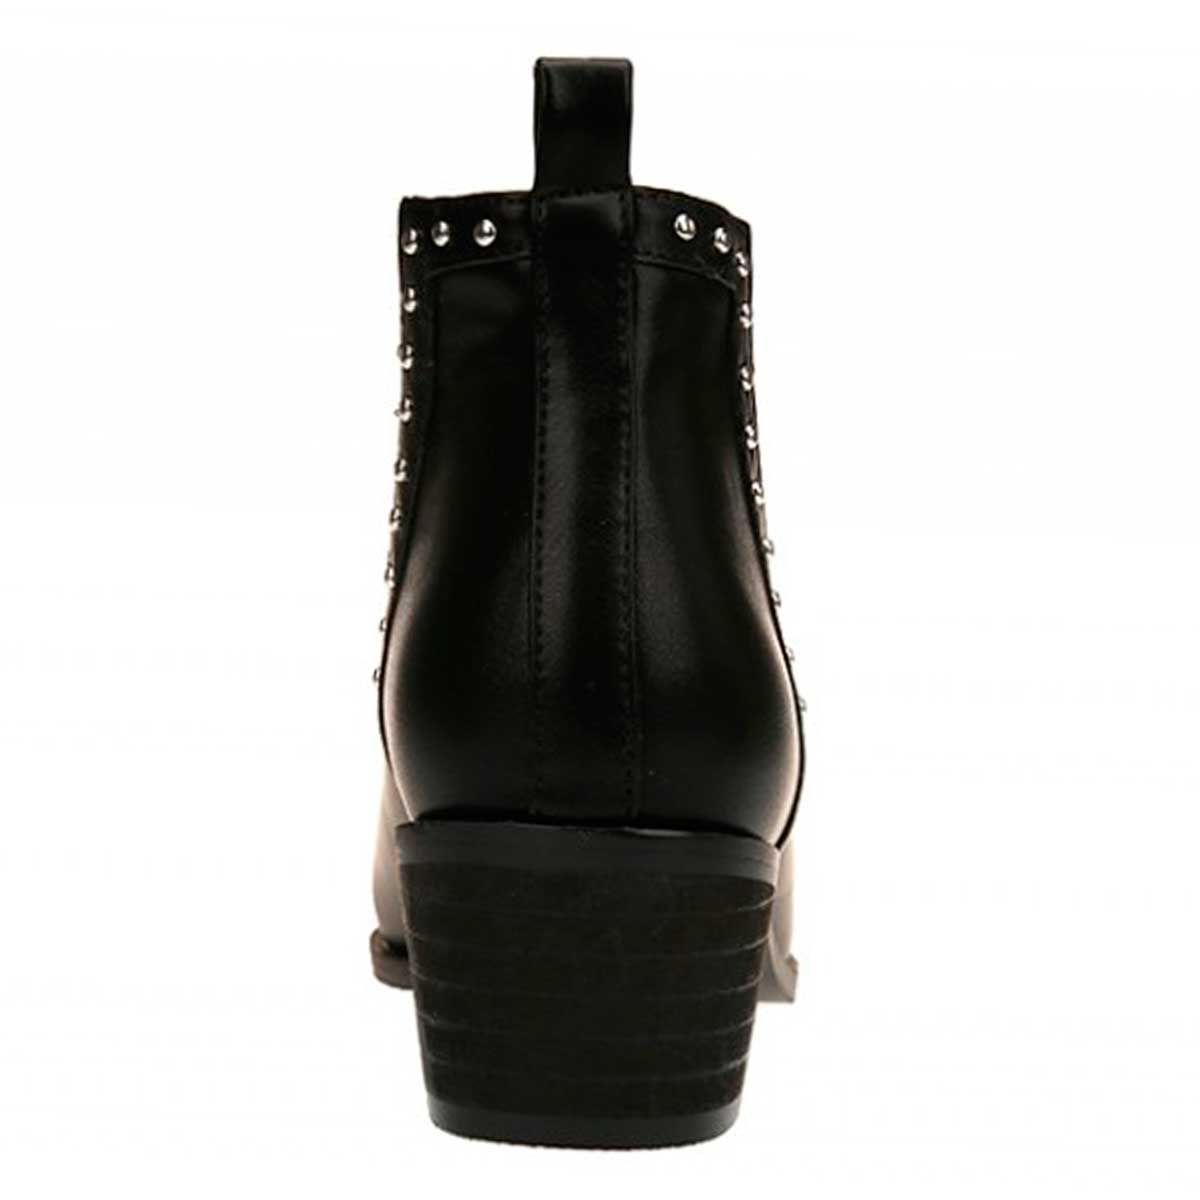 Montevita Studded Western Ankle Boot in Black